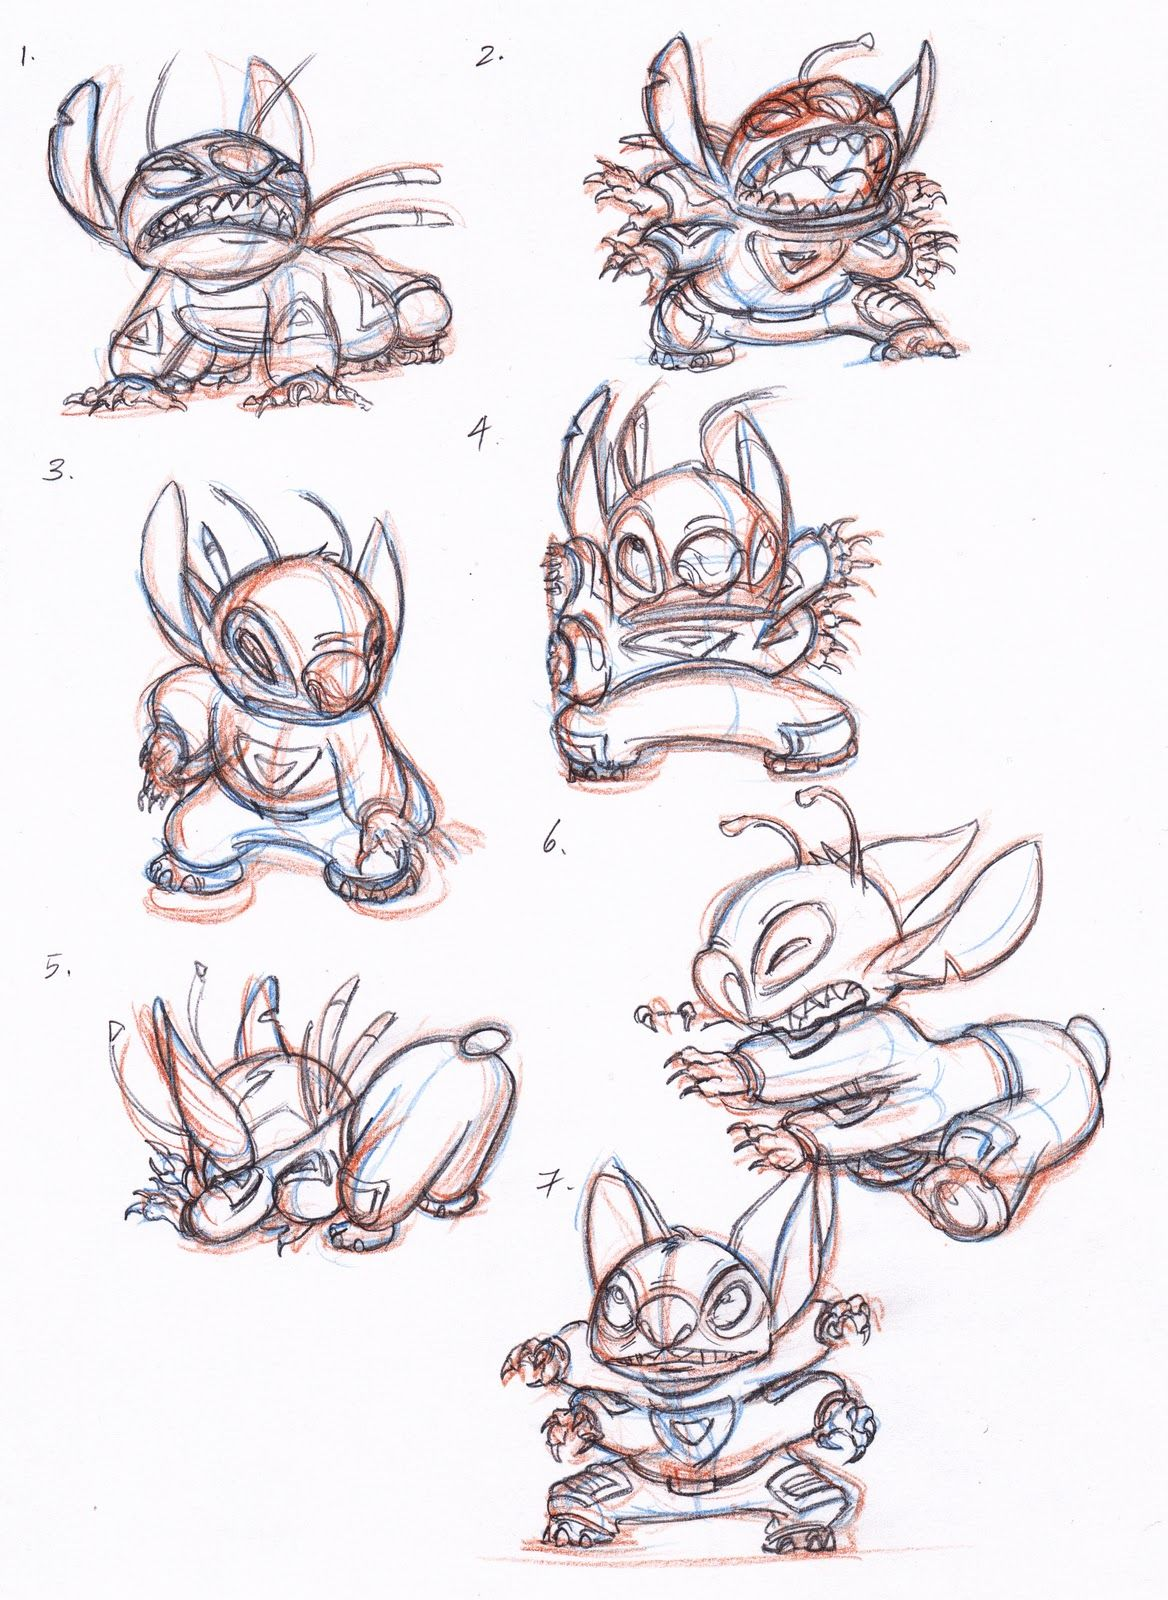 Stitch! Disney drawings